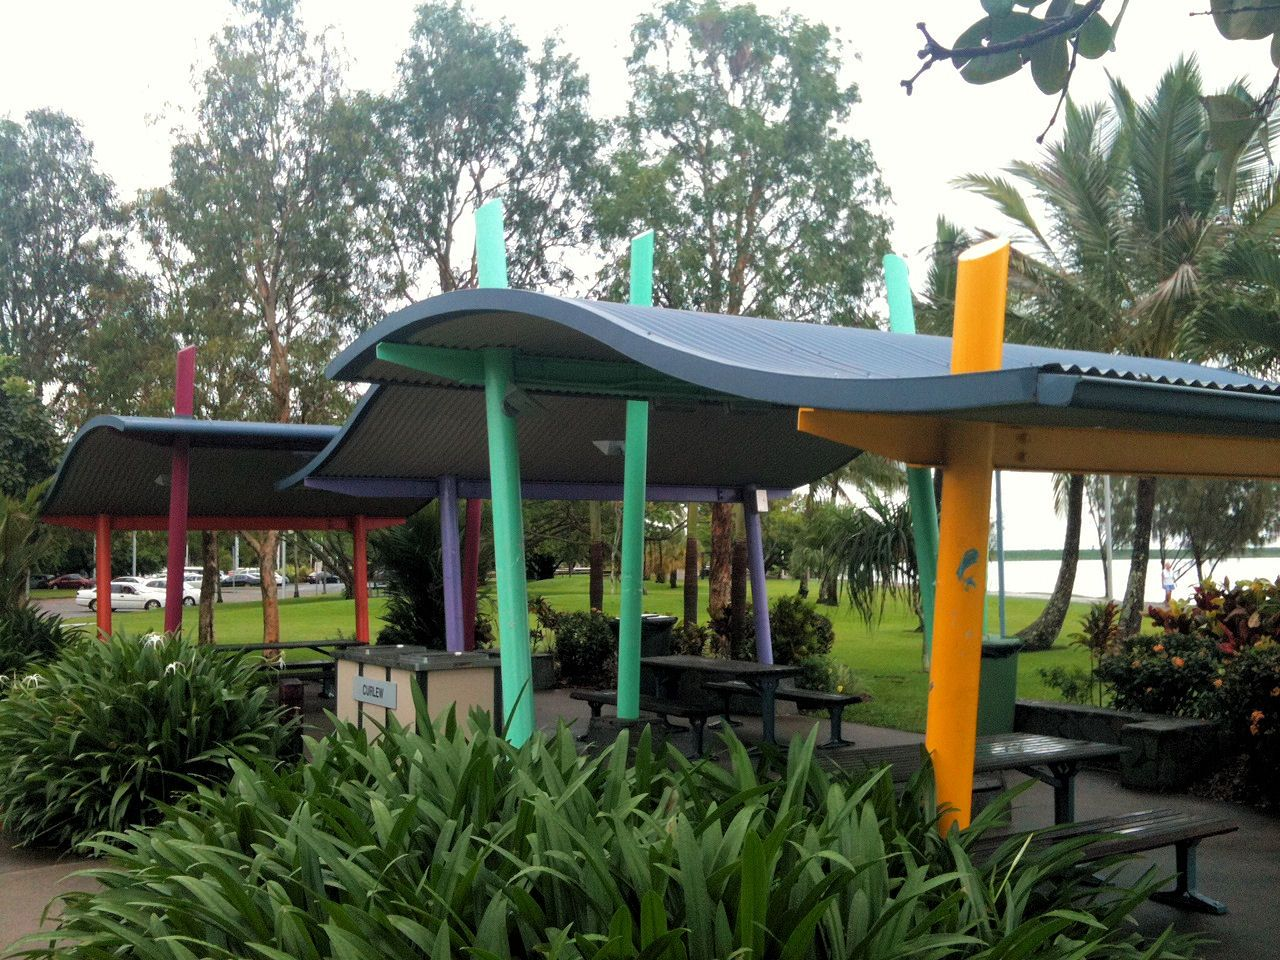 Creative And Inspired Designs Can Be Achieved With Ritek Roof Panels Roofing Systems Picnic Area Roof Panels